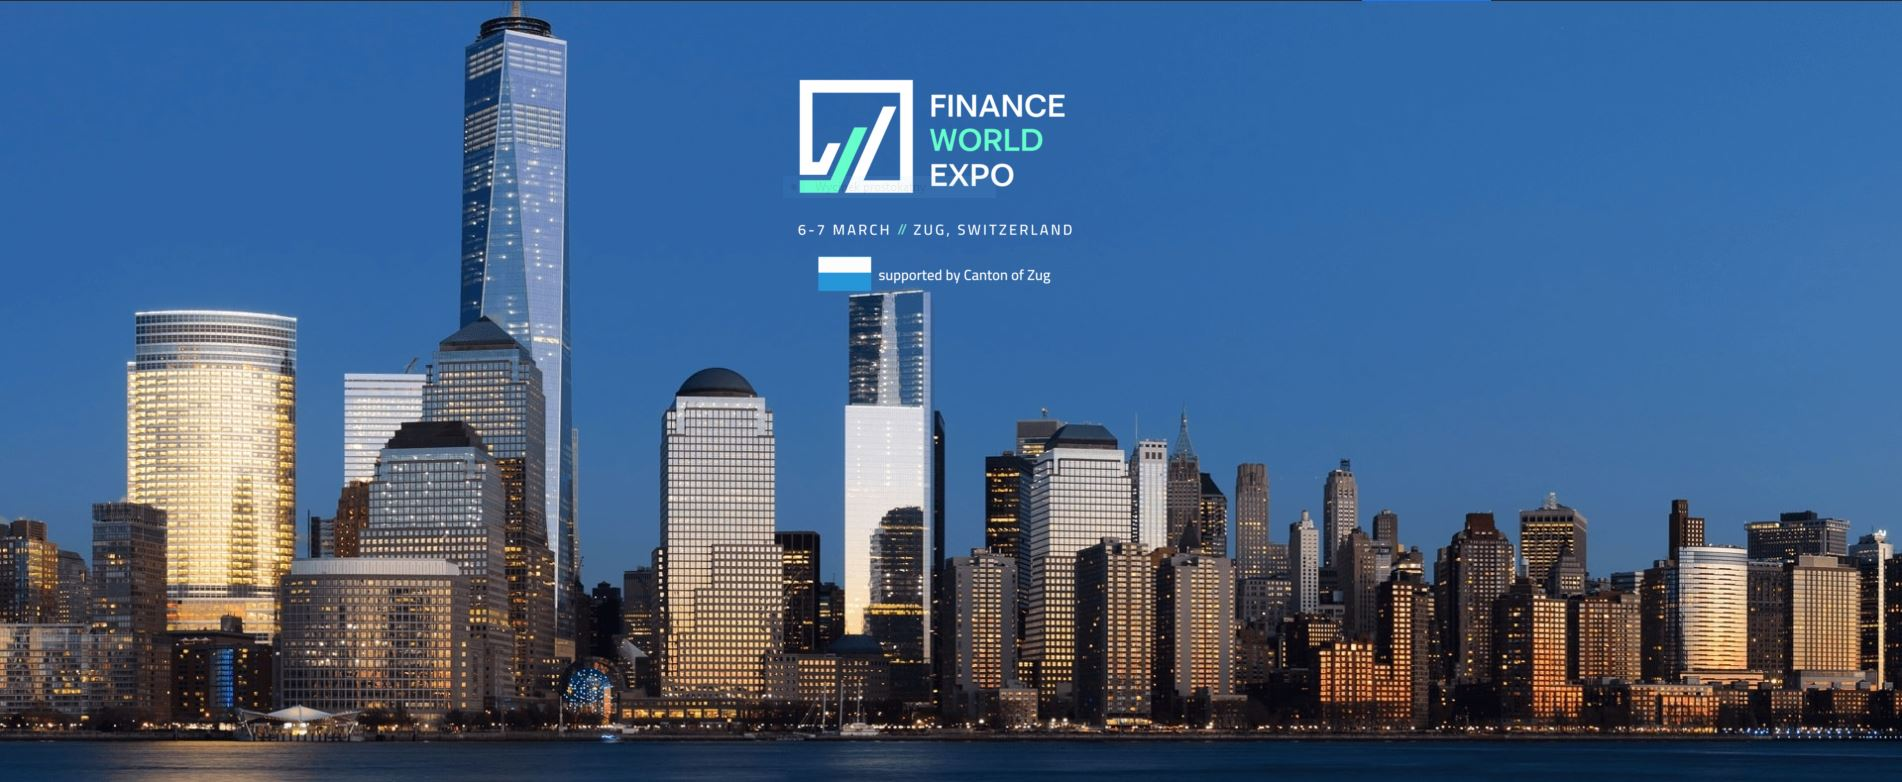 finance world expo 2.JPG